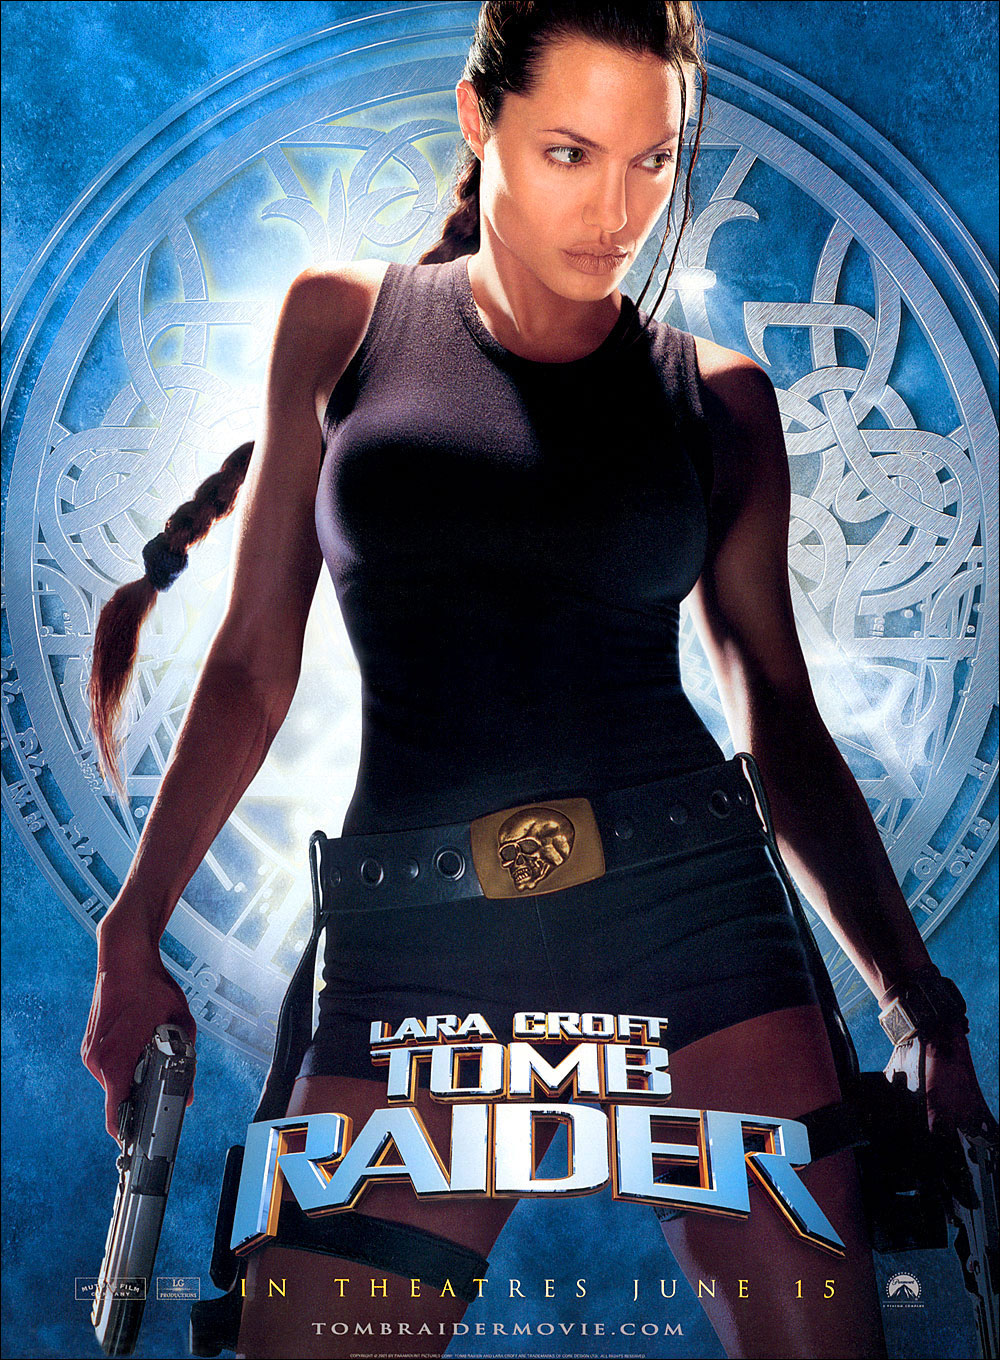 Tomb Raider : Lara Croft (Film)